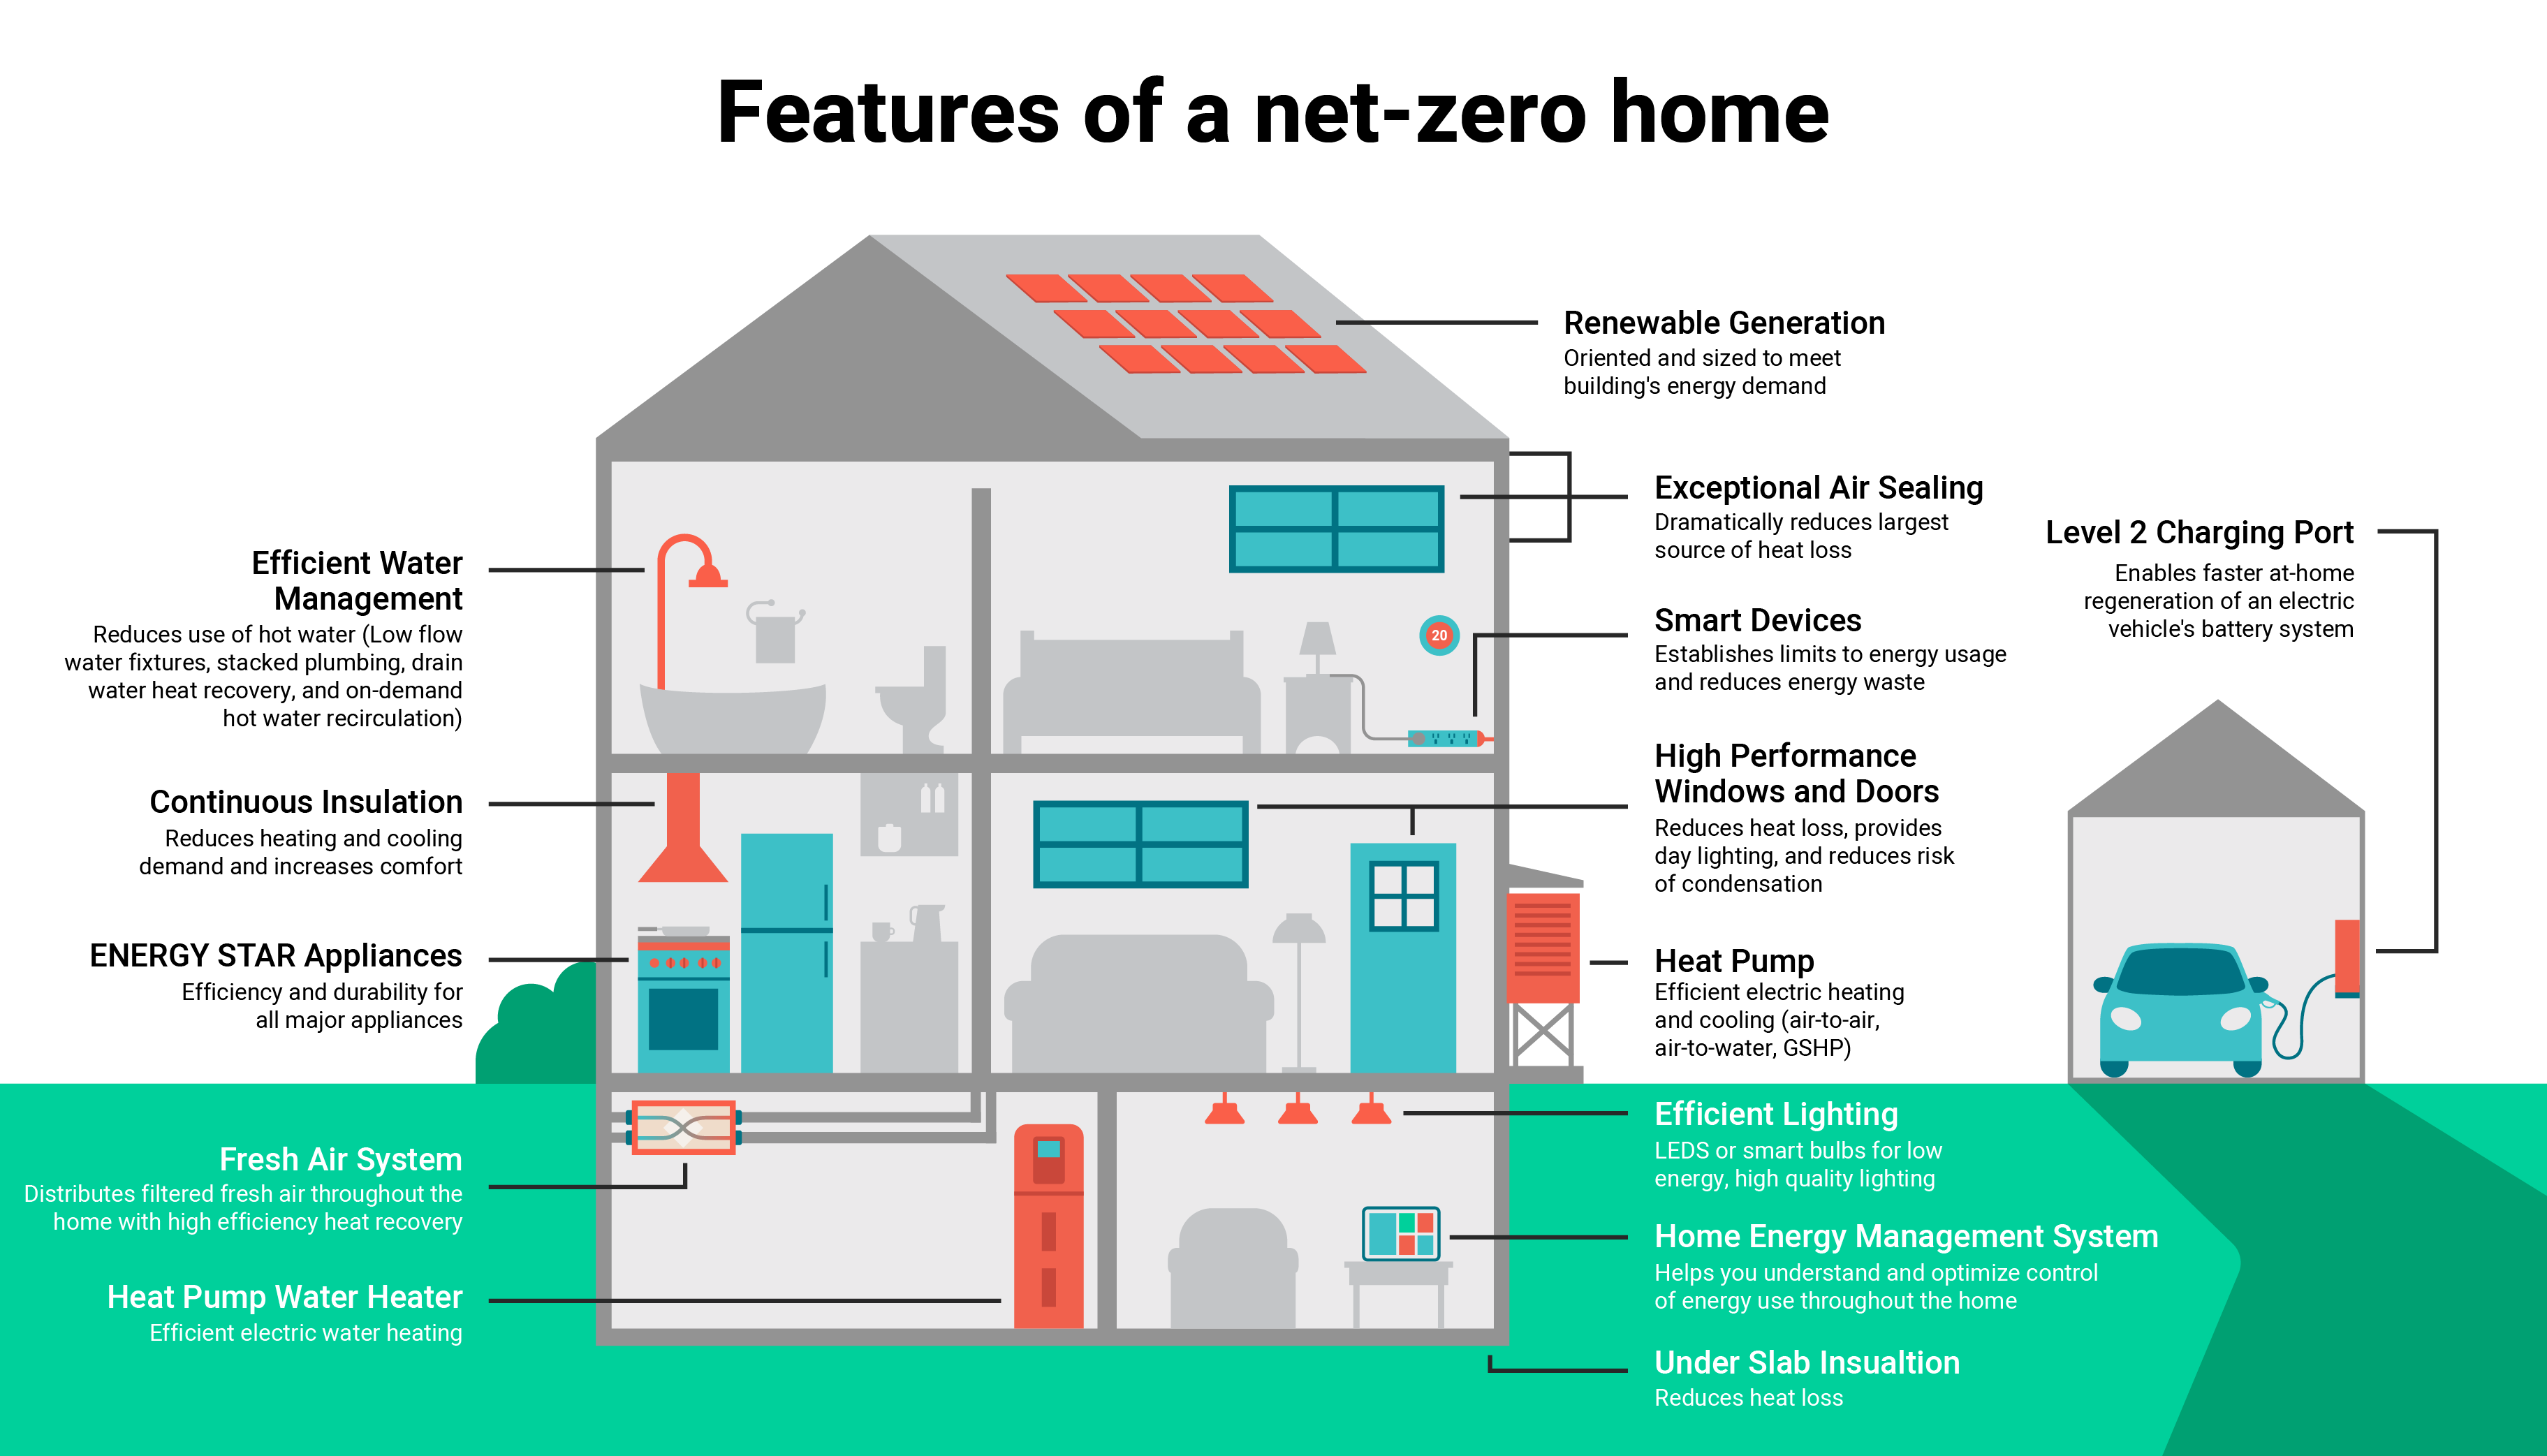 Features of a Net Zero Home